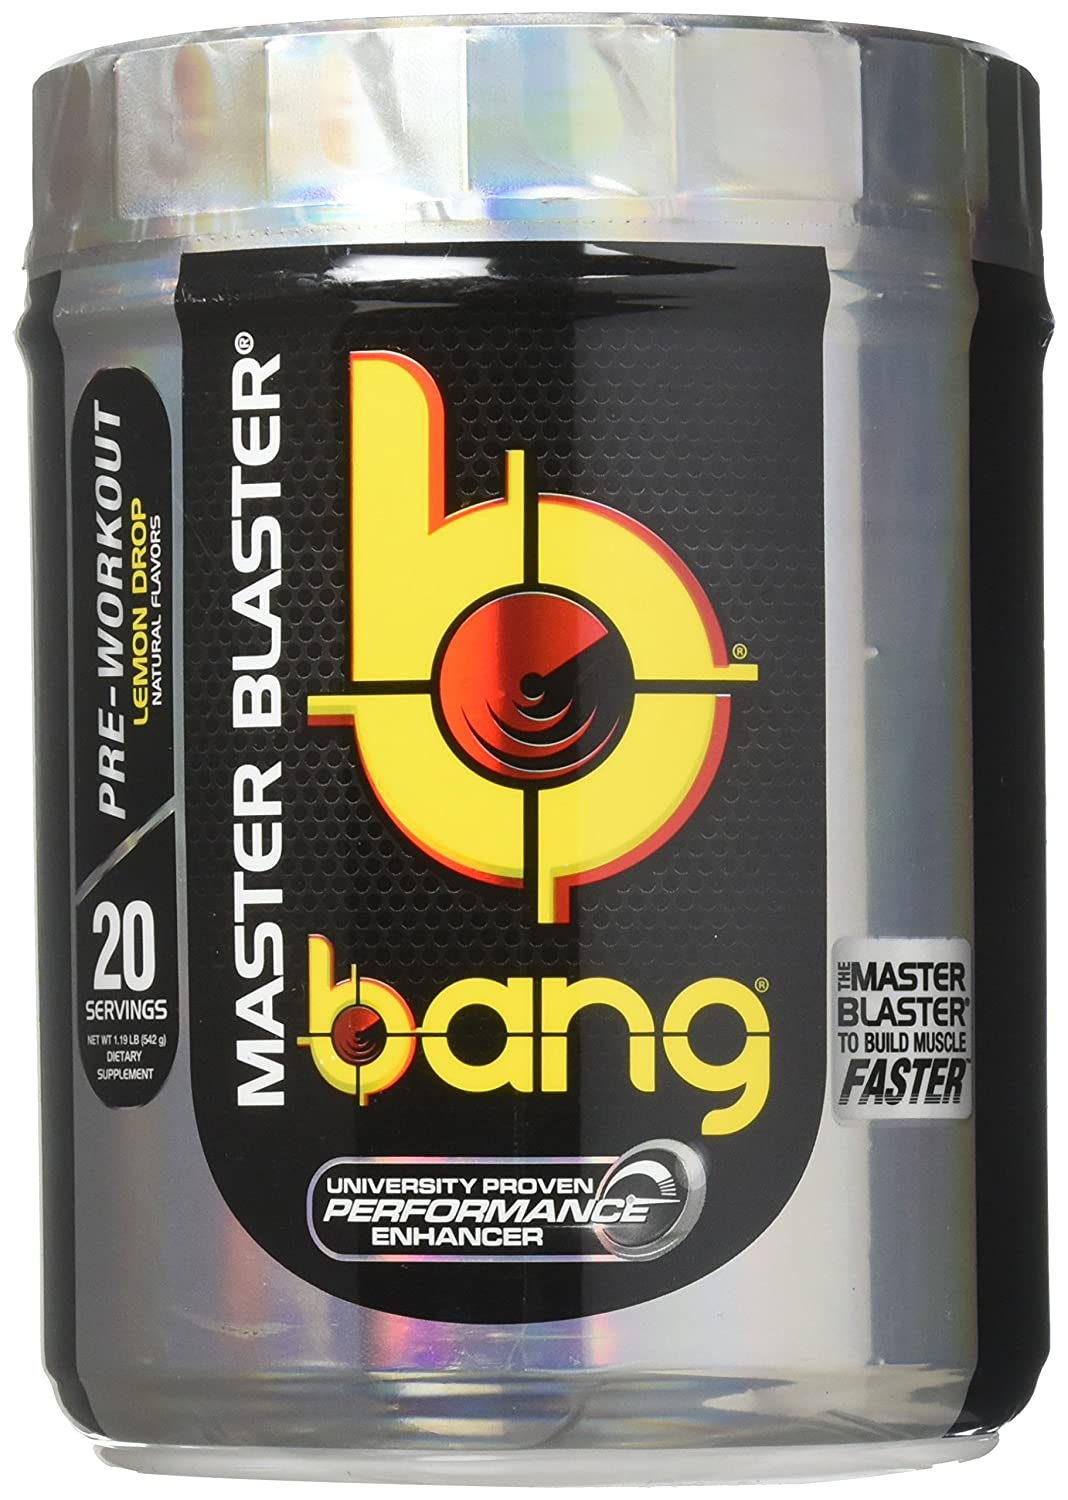 Amazon.com: VPX Bang Pre-Workout Master Blaster, Lemon Drop, 20 Servings: Health & Personal Care